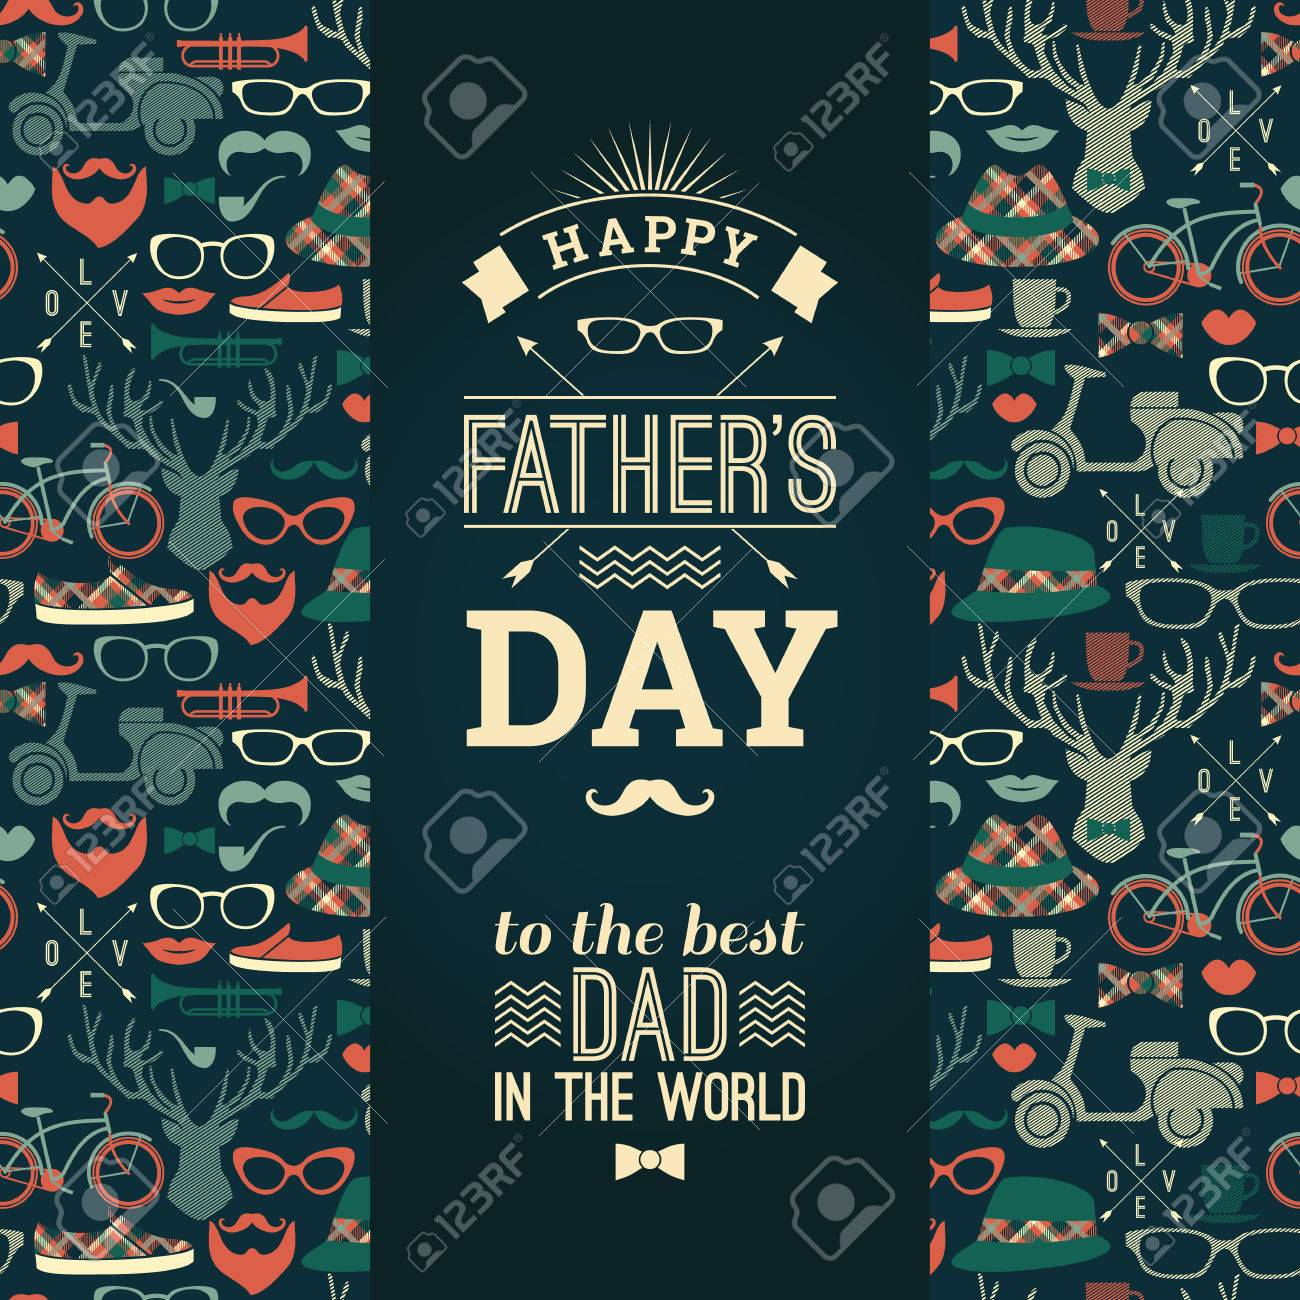 Happy Father's Day Card In Retro Style. Vector illustration. - 58025063